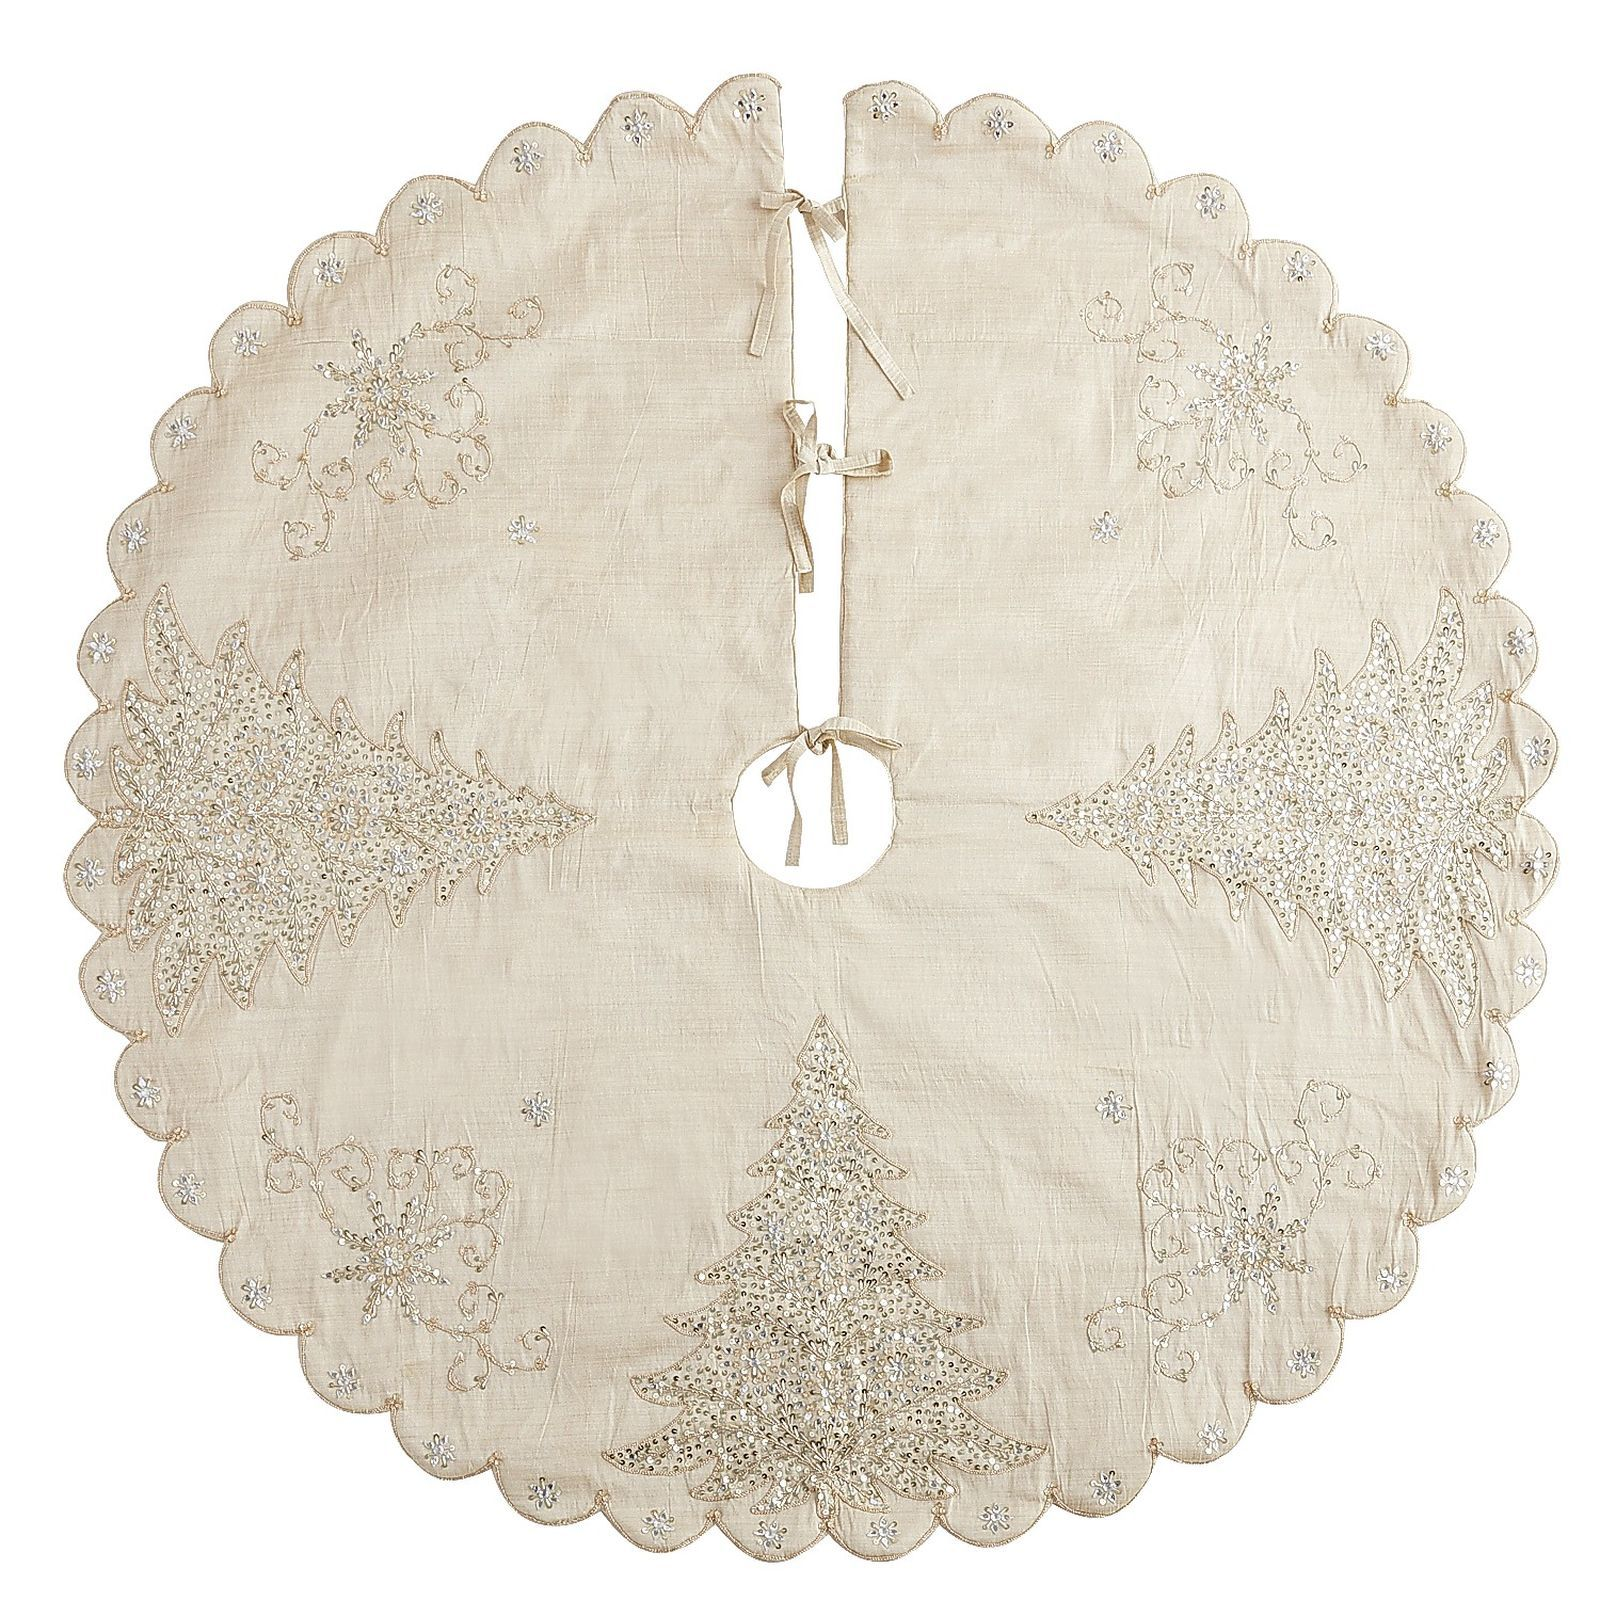 A Vision In White And Gold Our Tree Skirt Sparkles With Bead Embellished Em Diy Christmas Tree Skirt Christmas Tree Skirts Patterns White Christmas Tree Skirt